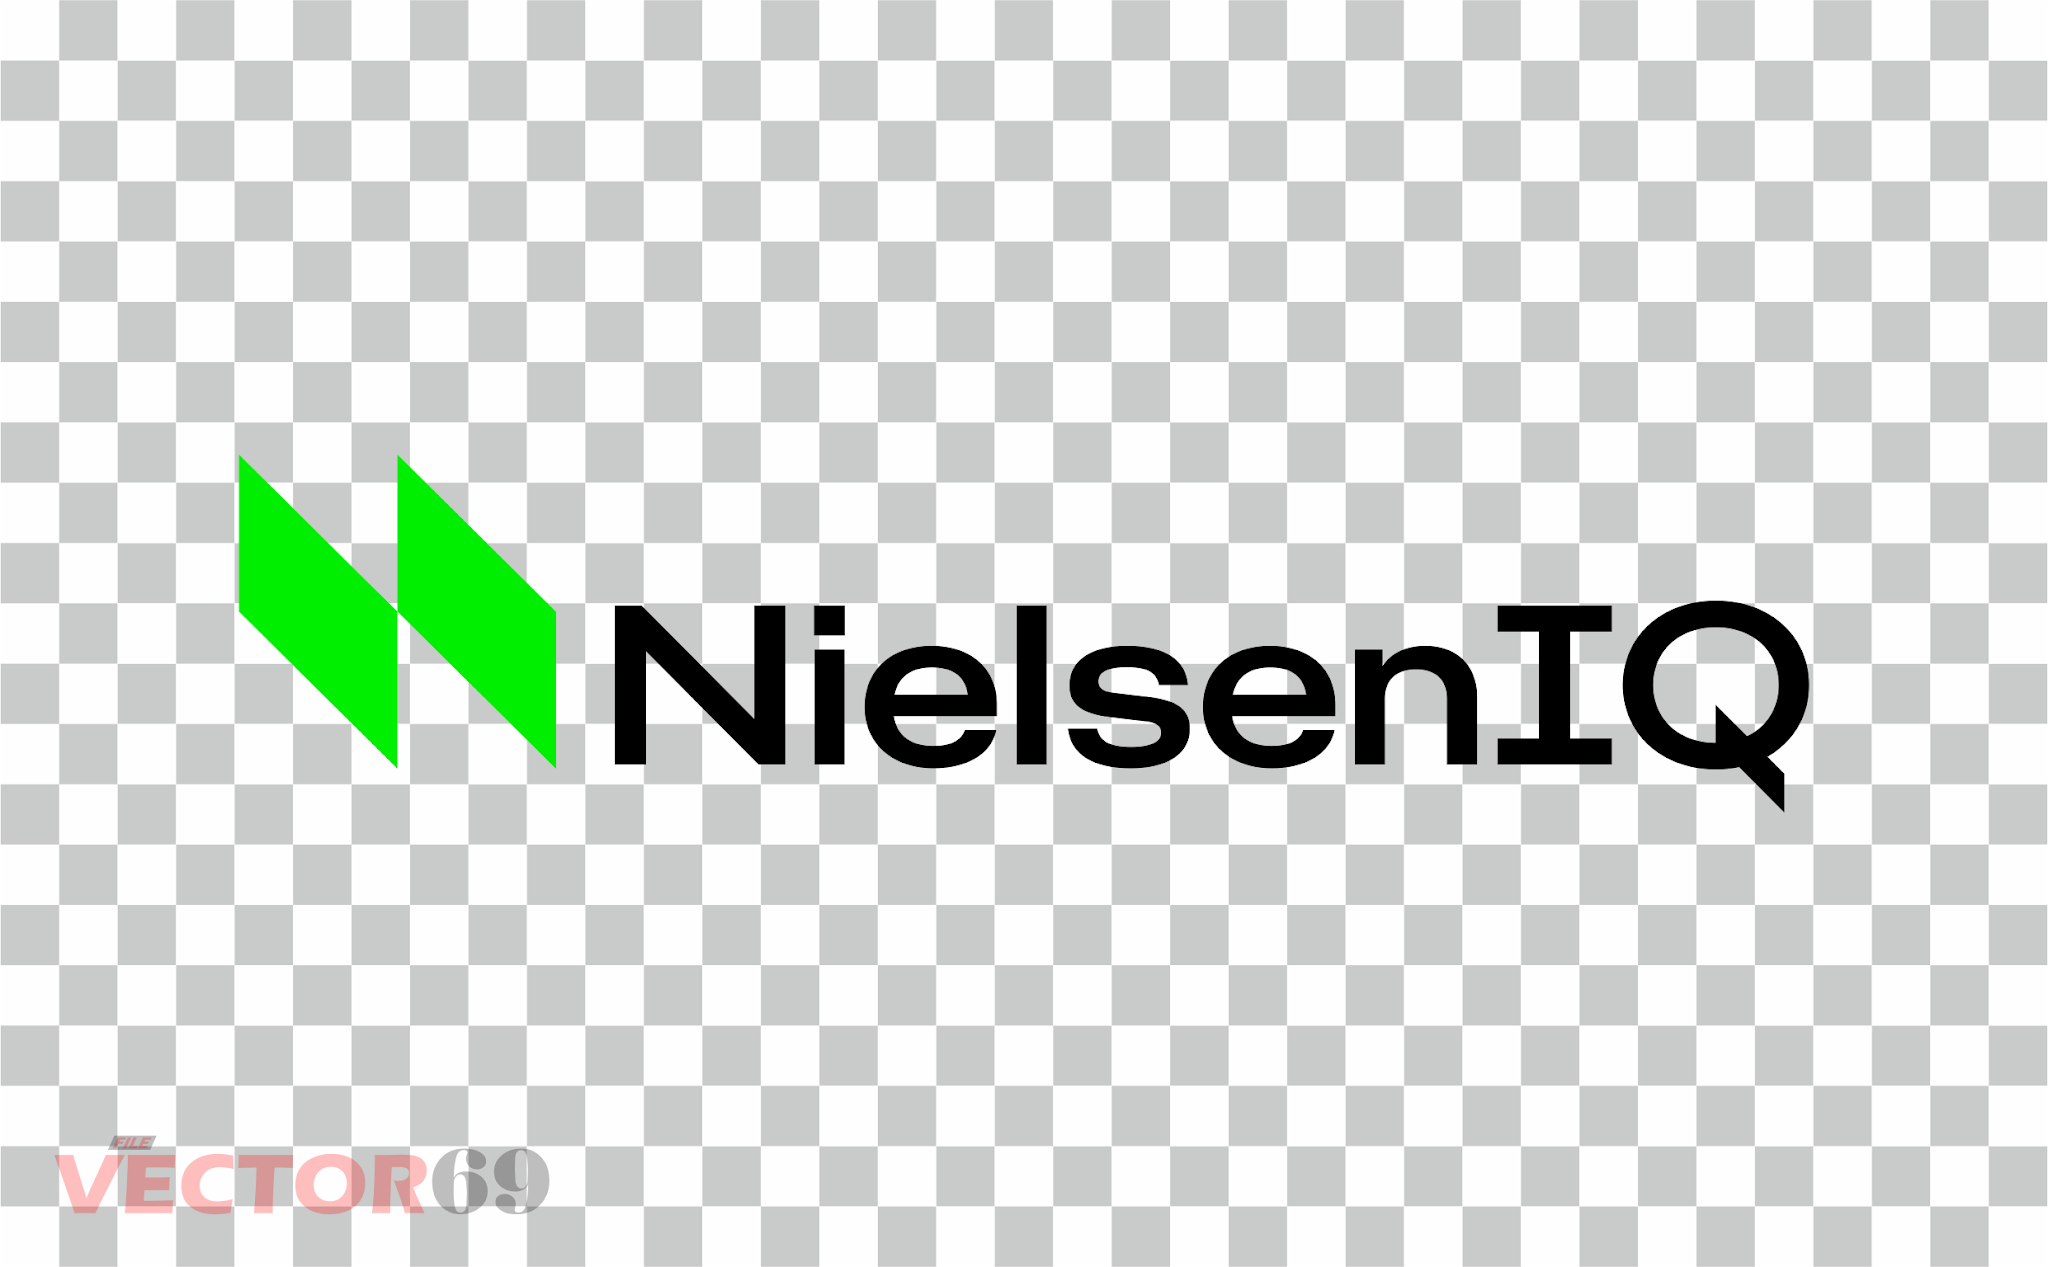 NielsenIQ Logo - Download Vector File PNG (Portable Network Graphics)